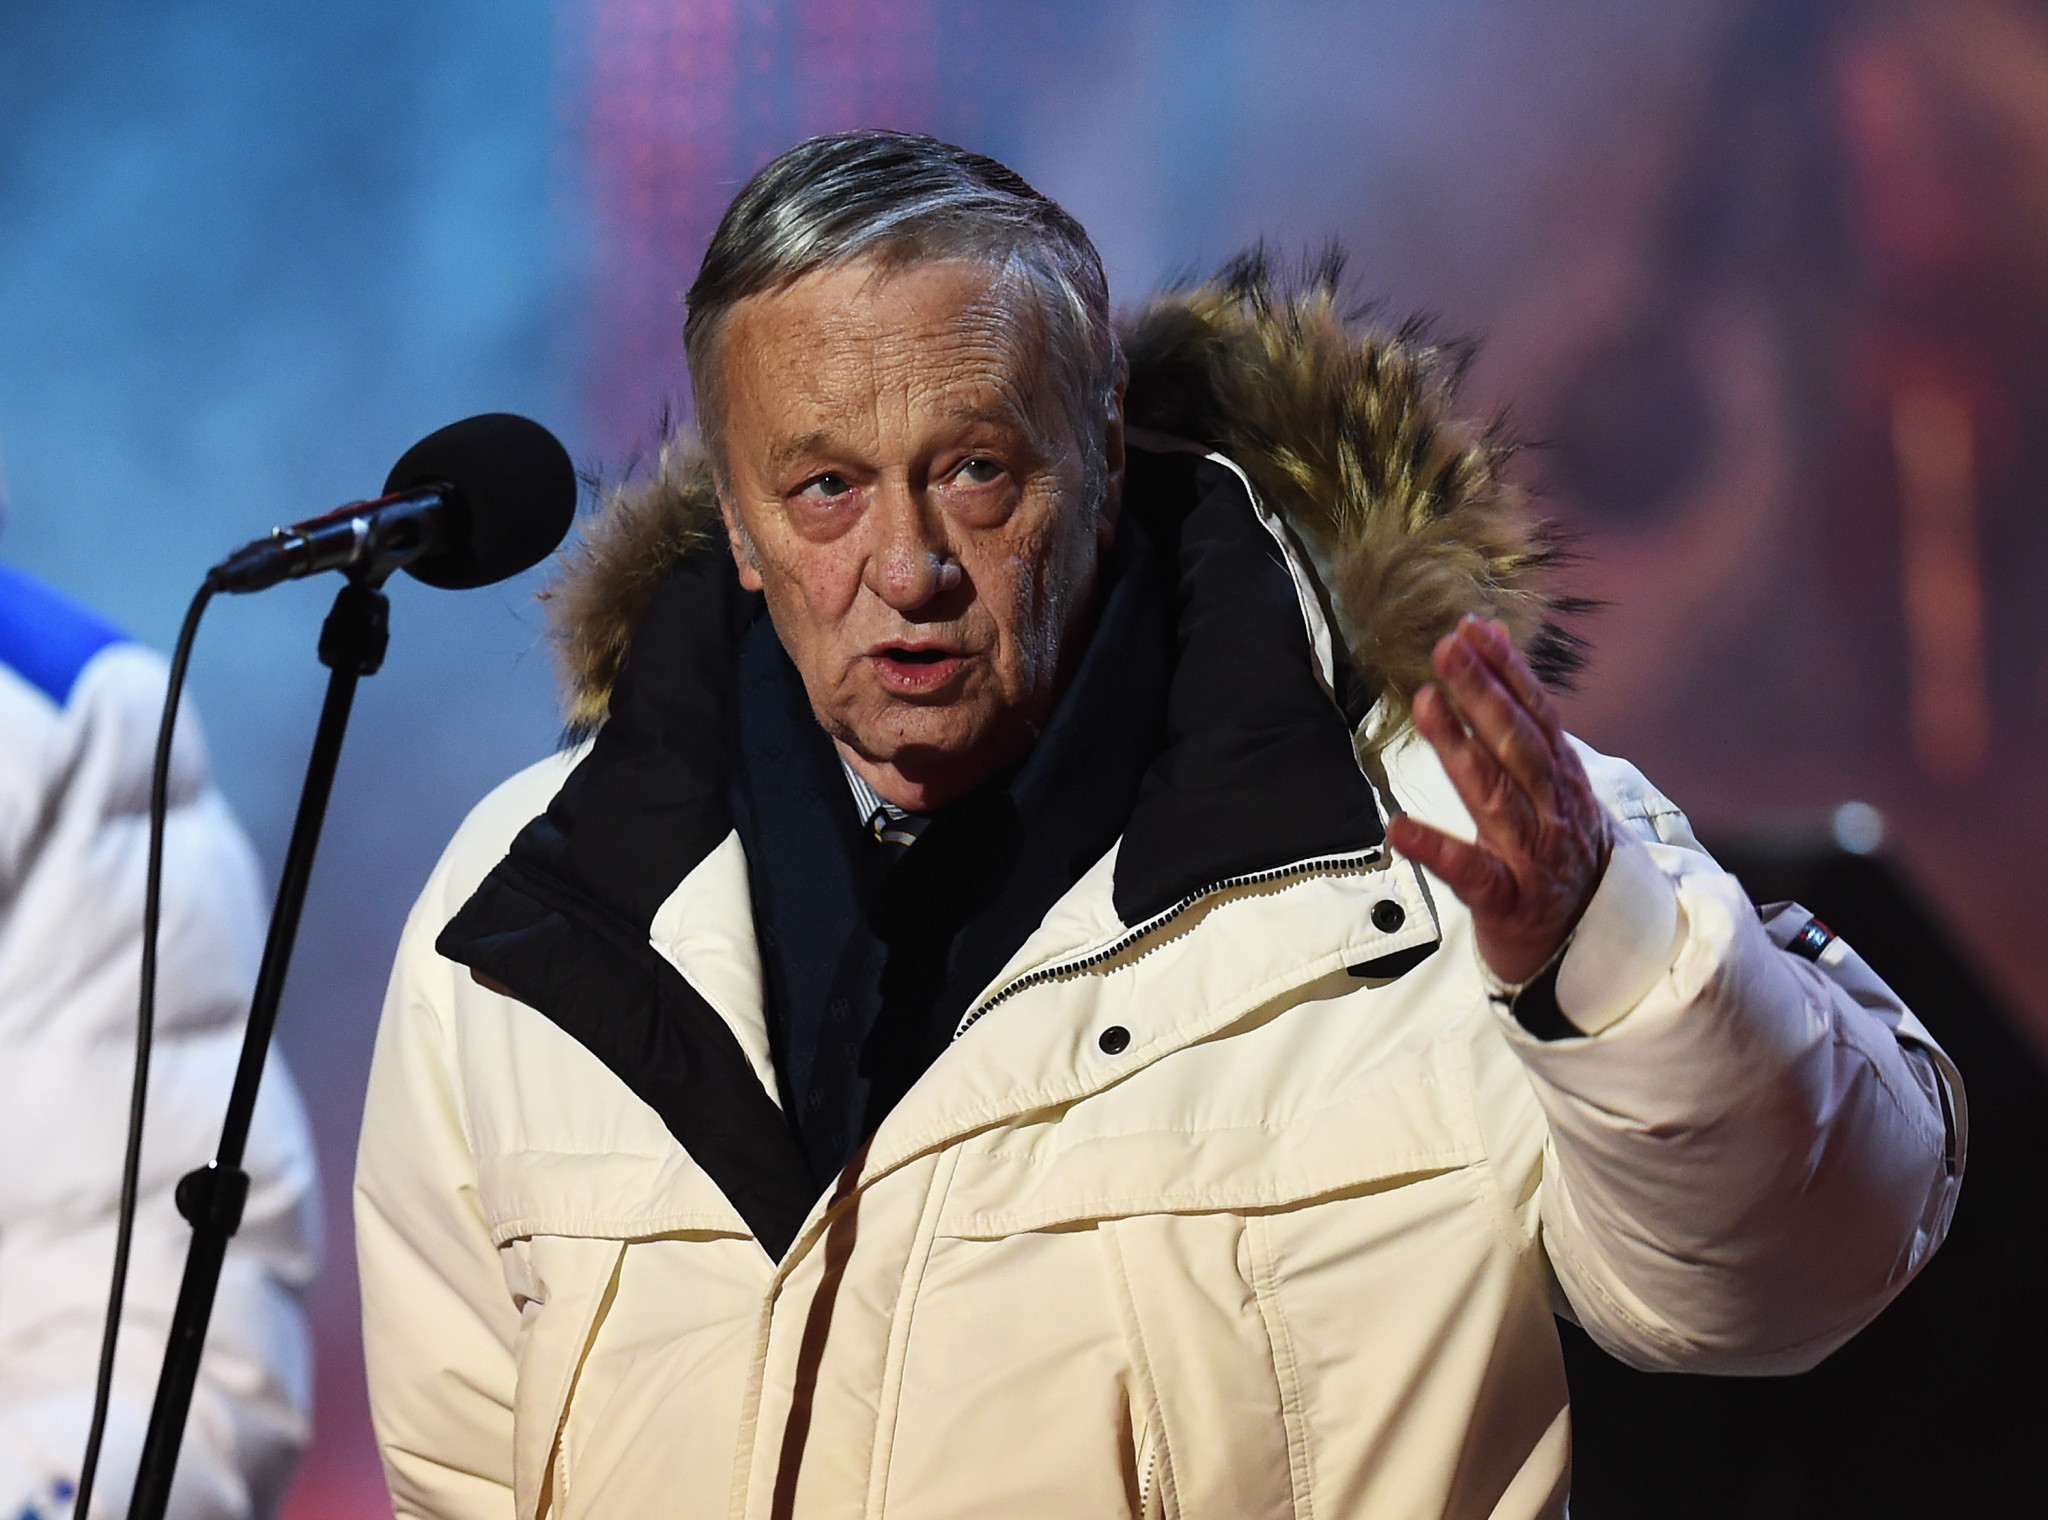 Gian-Franco Kasper is set to step down after 23 years in charge of the International Ski Federation ©Getty Images